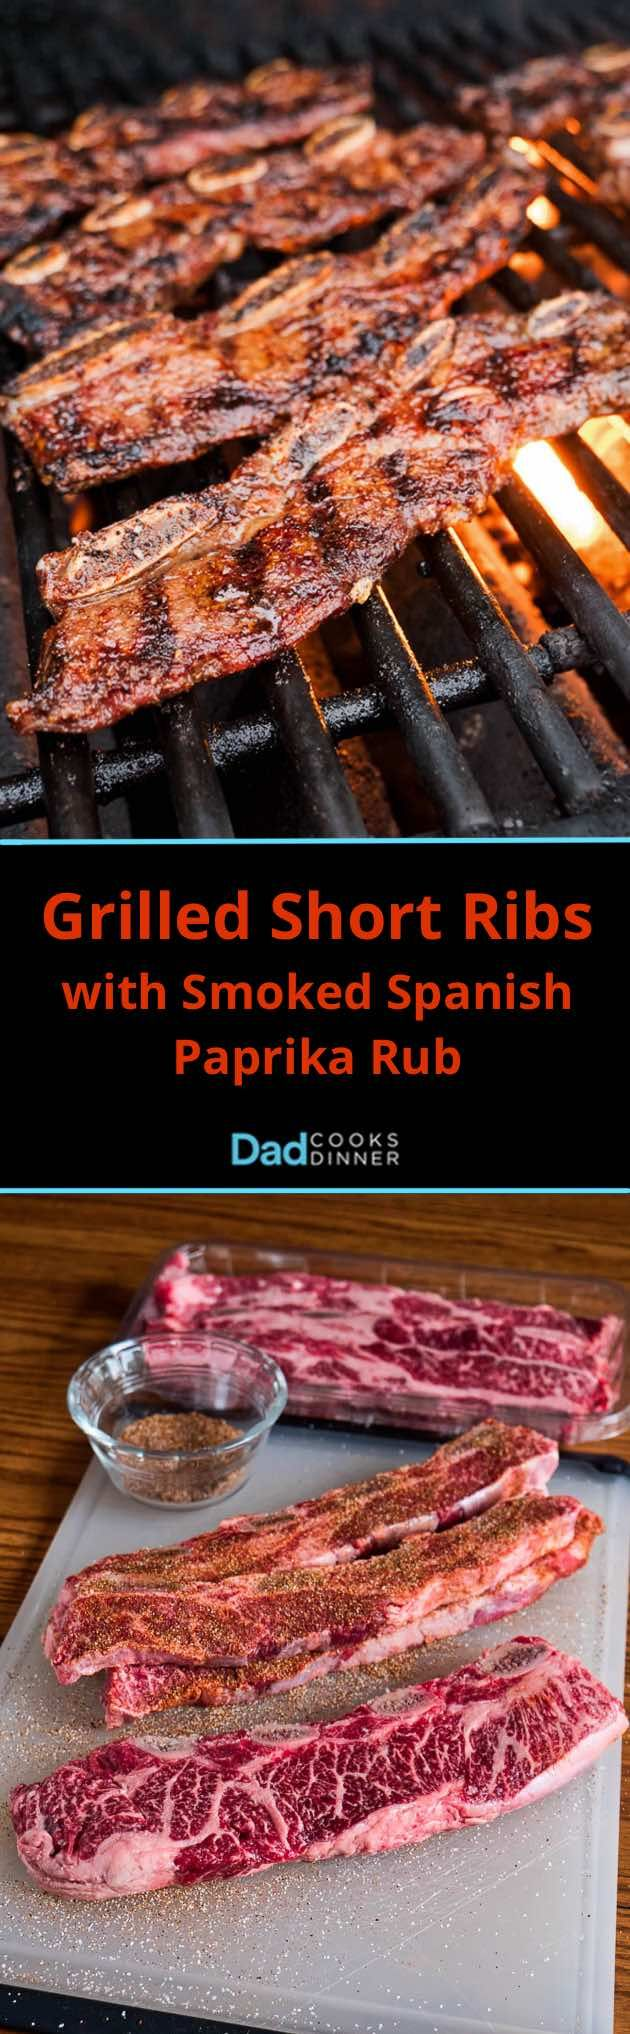 Grilled Short Ribs with Smoked Spanish Paprika Rub. Thin cut flanken style short ribs on the grill with a quick, easy spice rub. | DadCooksDinner.com via @DadCooksDinner